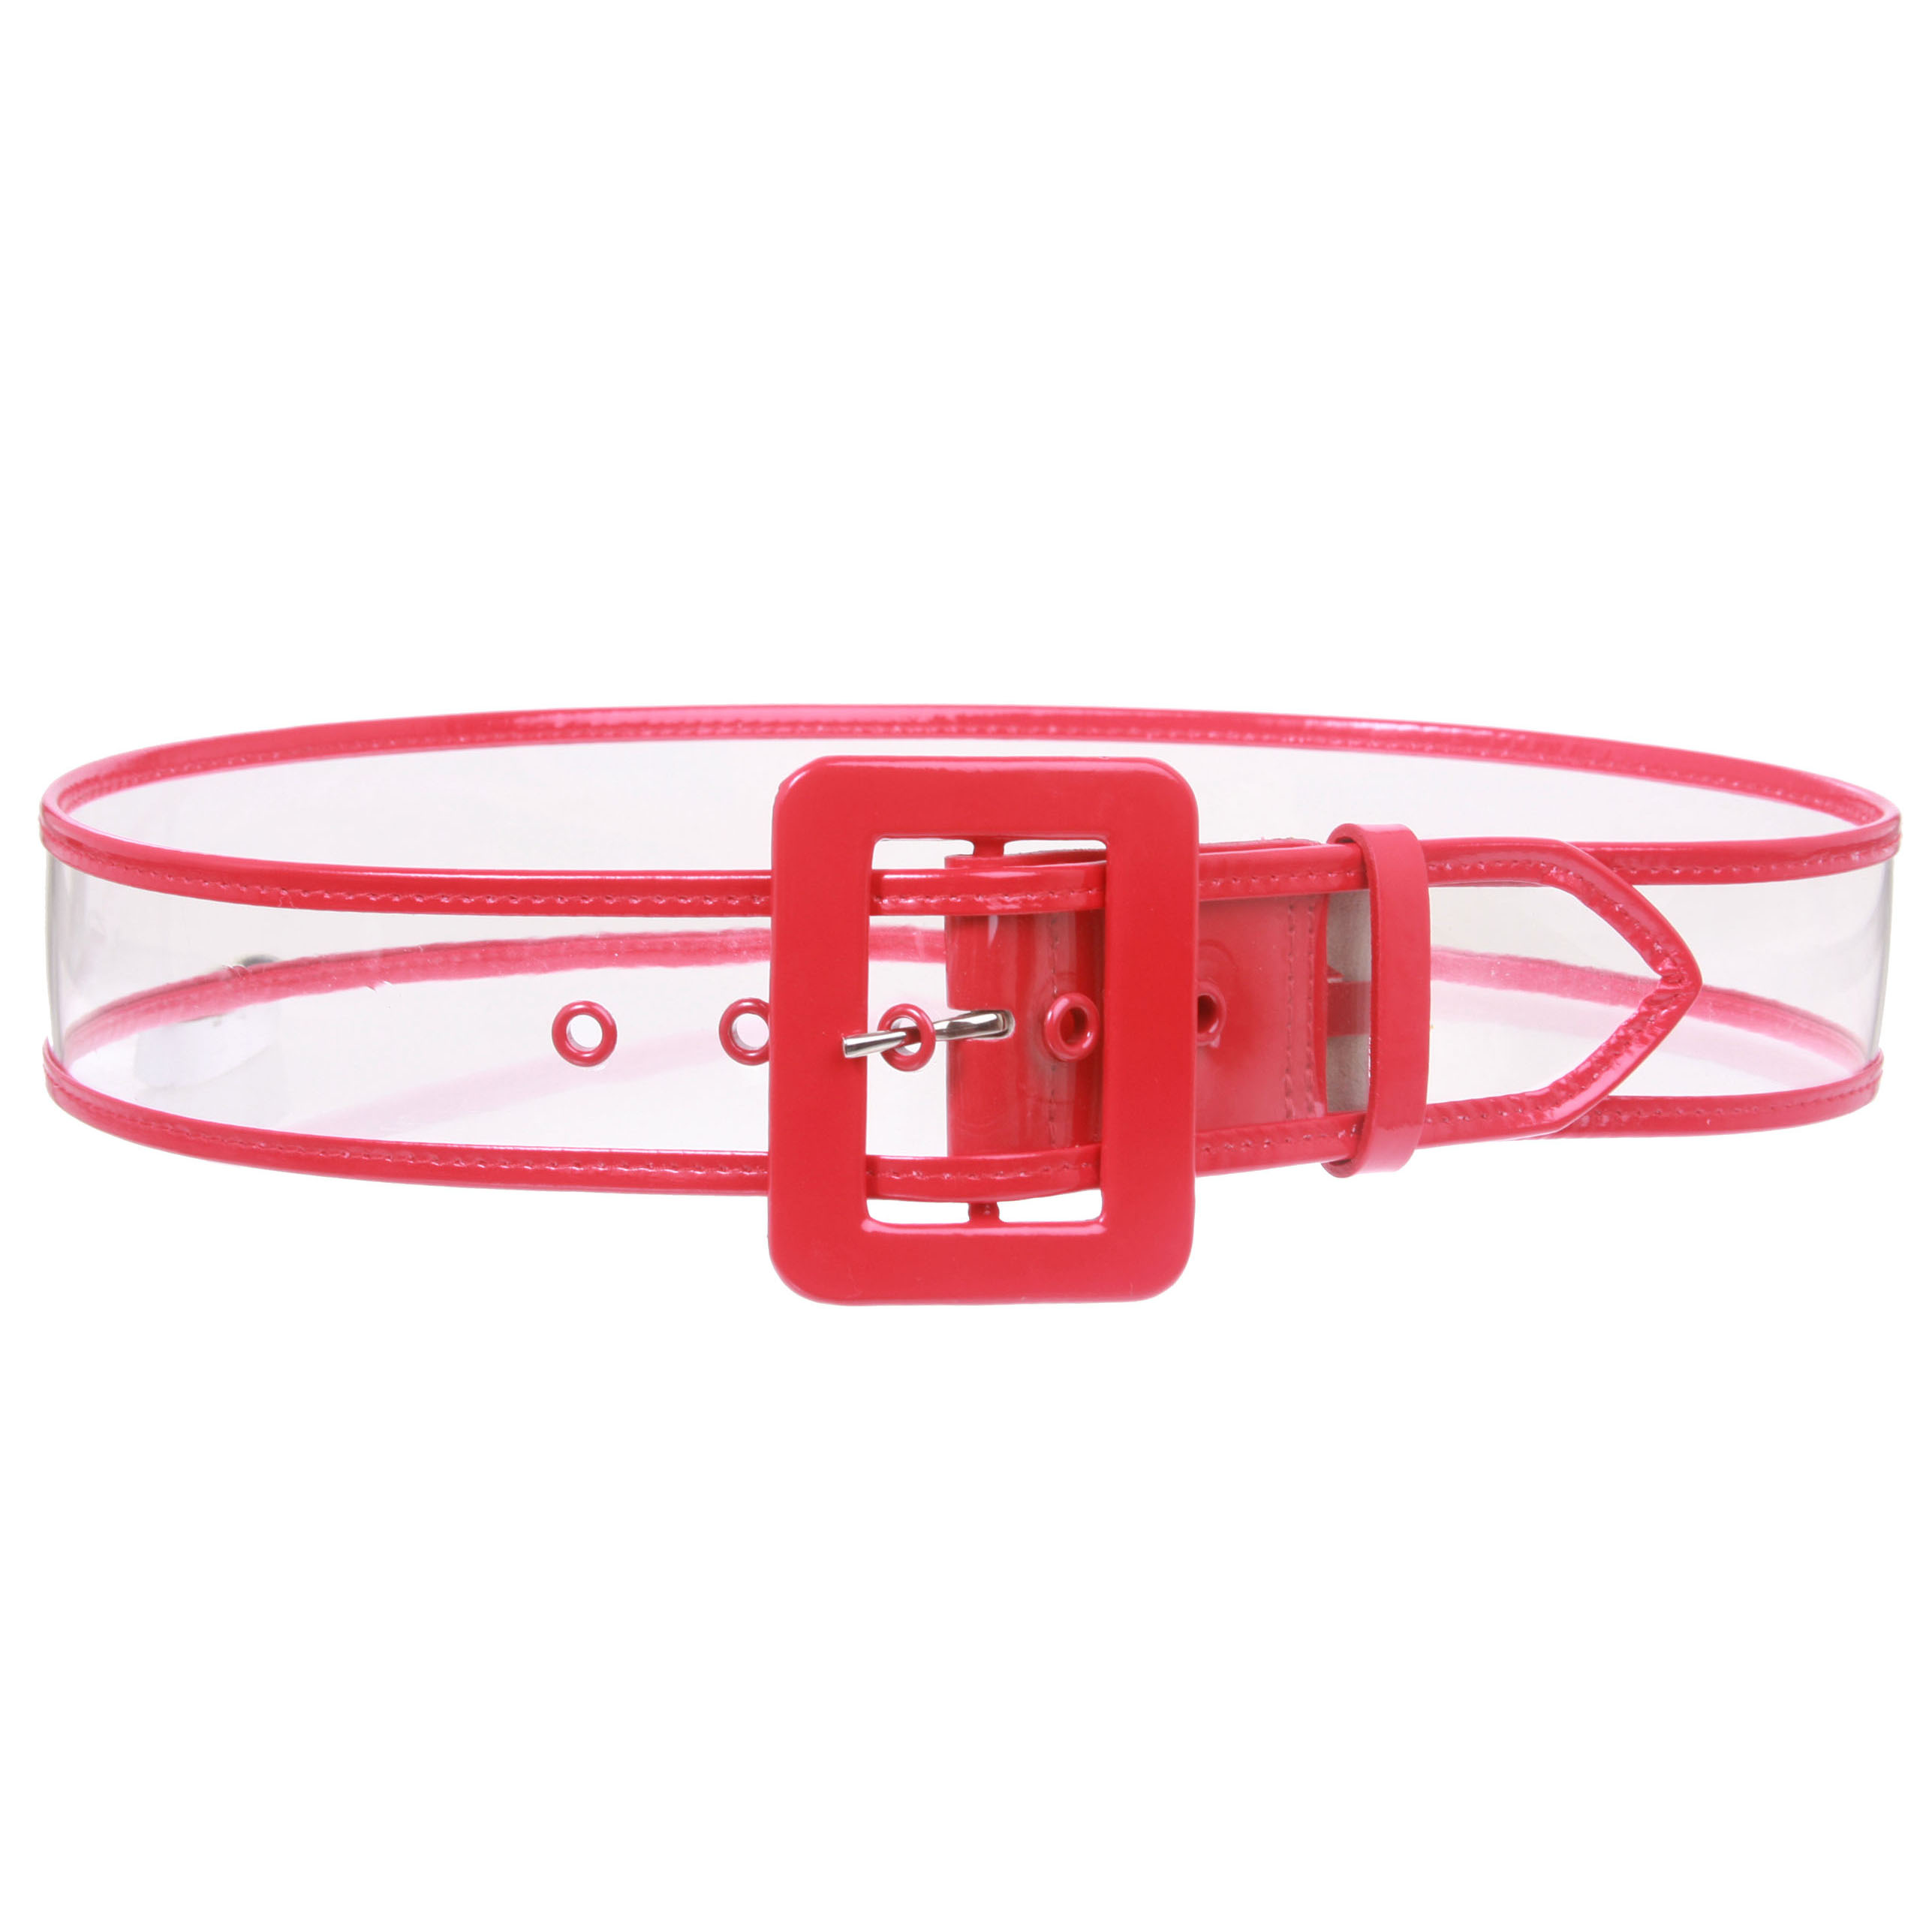 2 width Fun Candy Color Jelly Belt